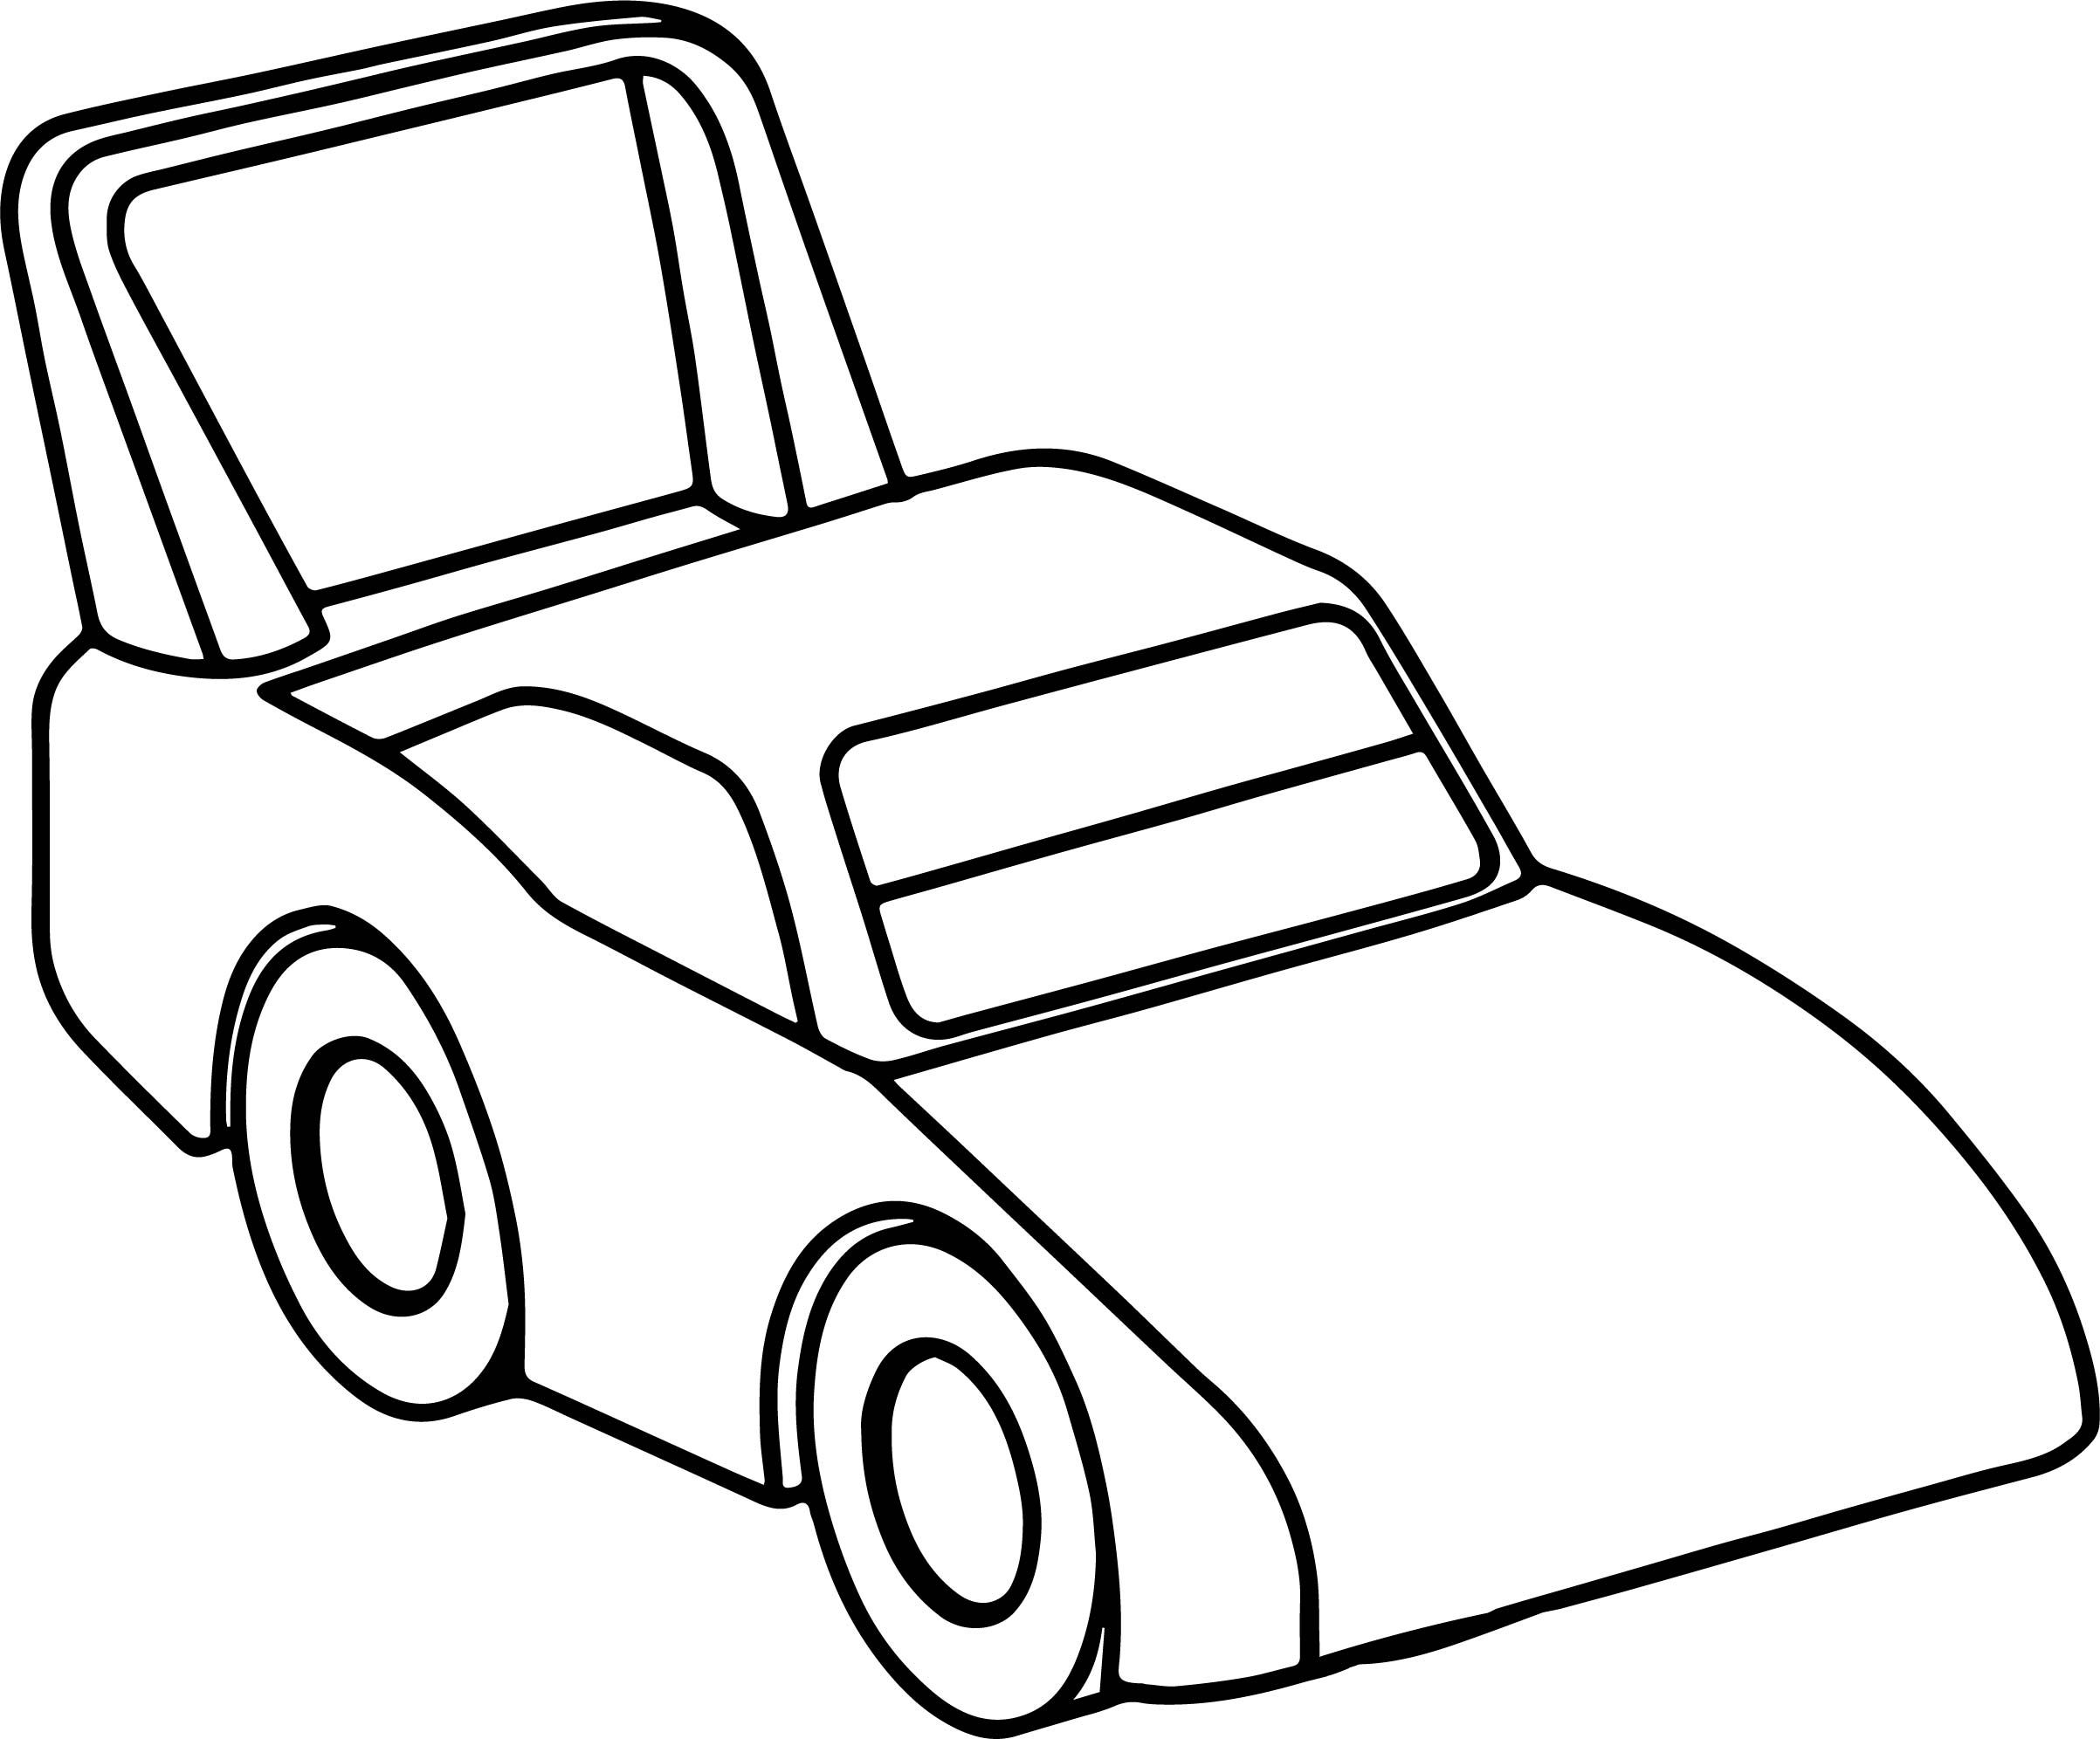 toy car coloring page toy car coloring pages coloring pages to download and print toy coloring car page